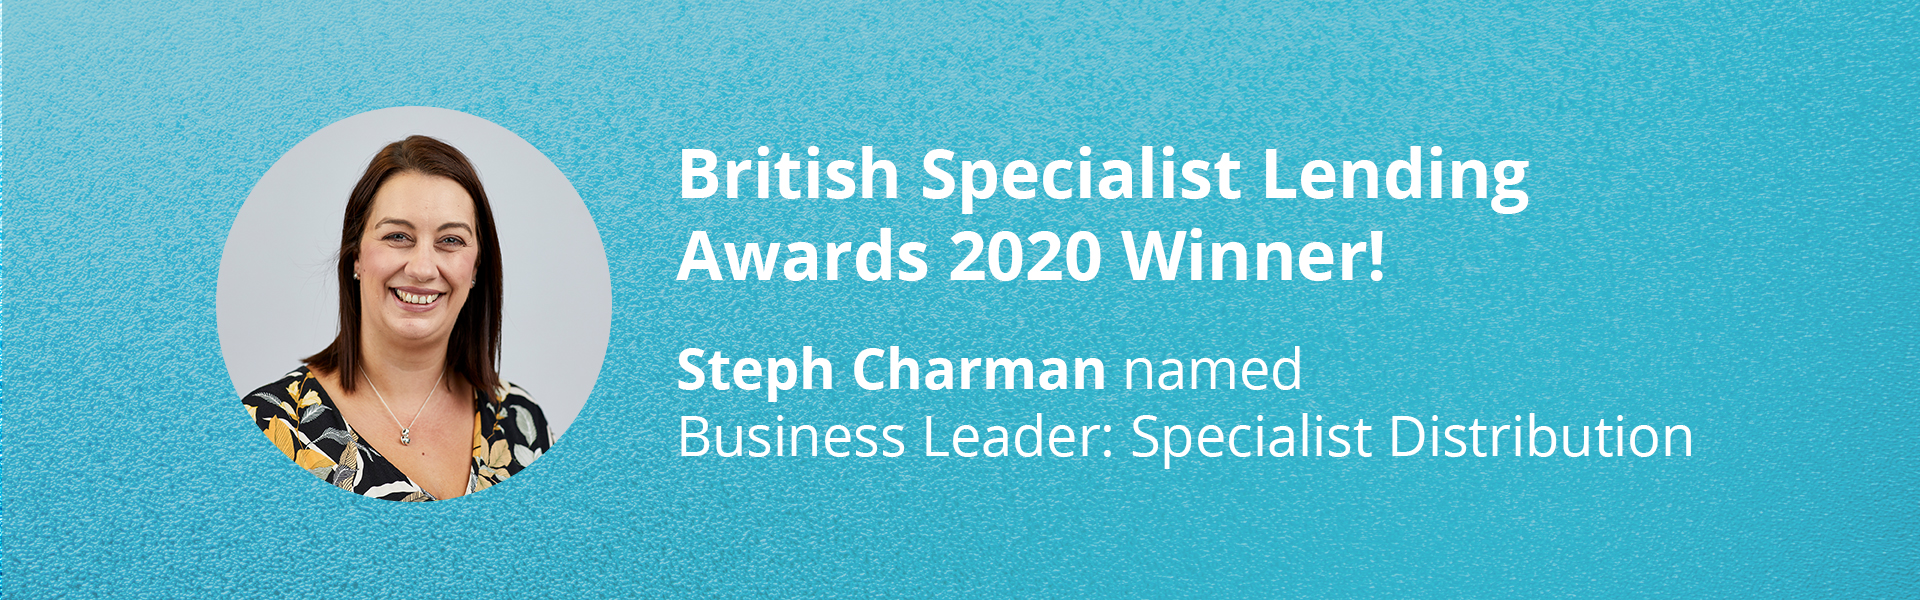 Steph Charman wins at British Specialist Lending Awards 2020